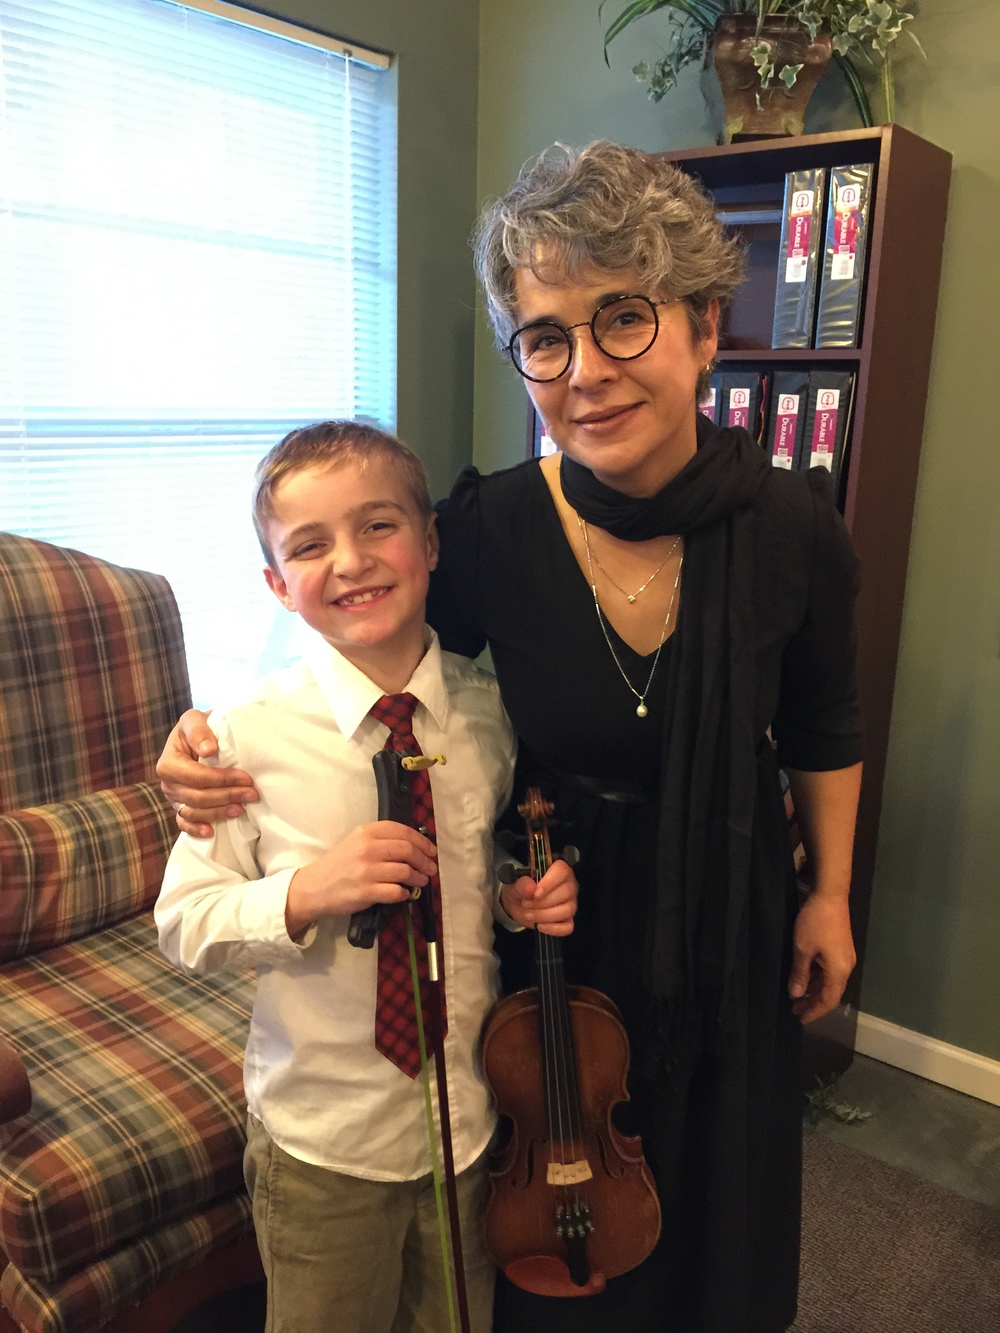 Ms. Petia. at Elliott's recital, december 2015